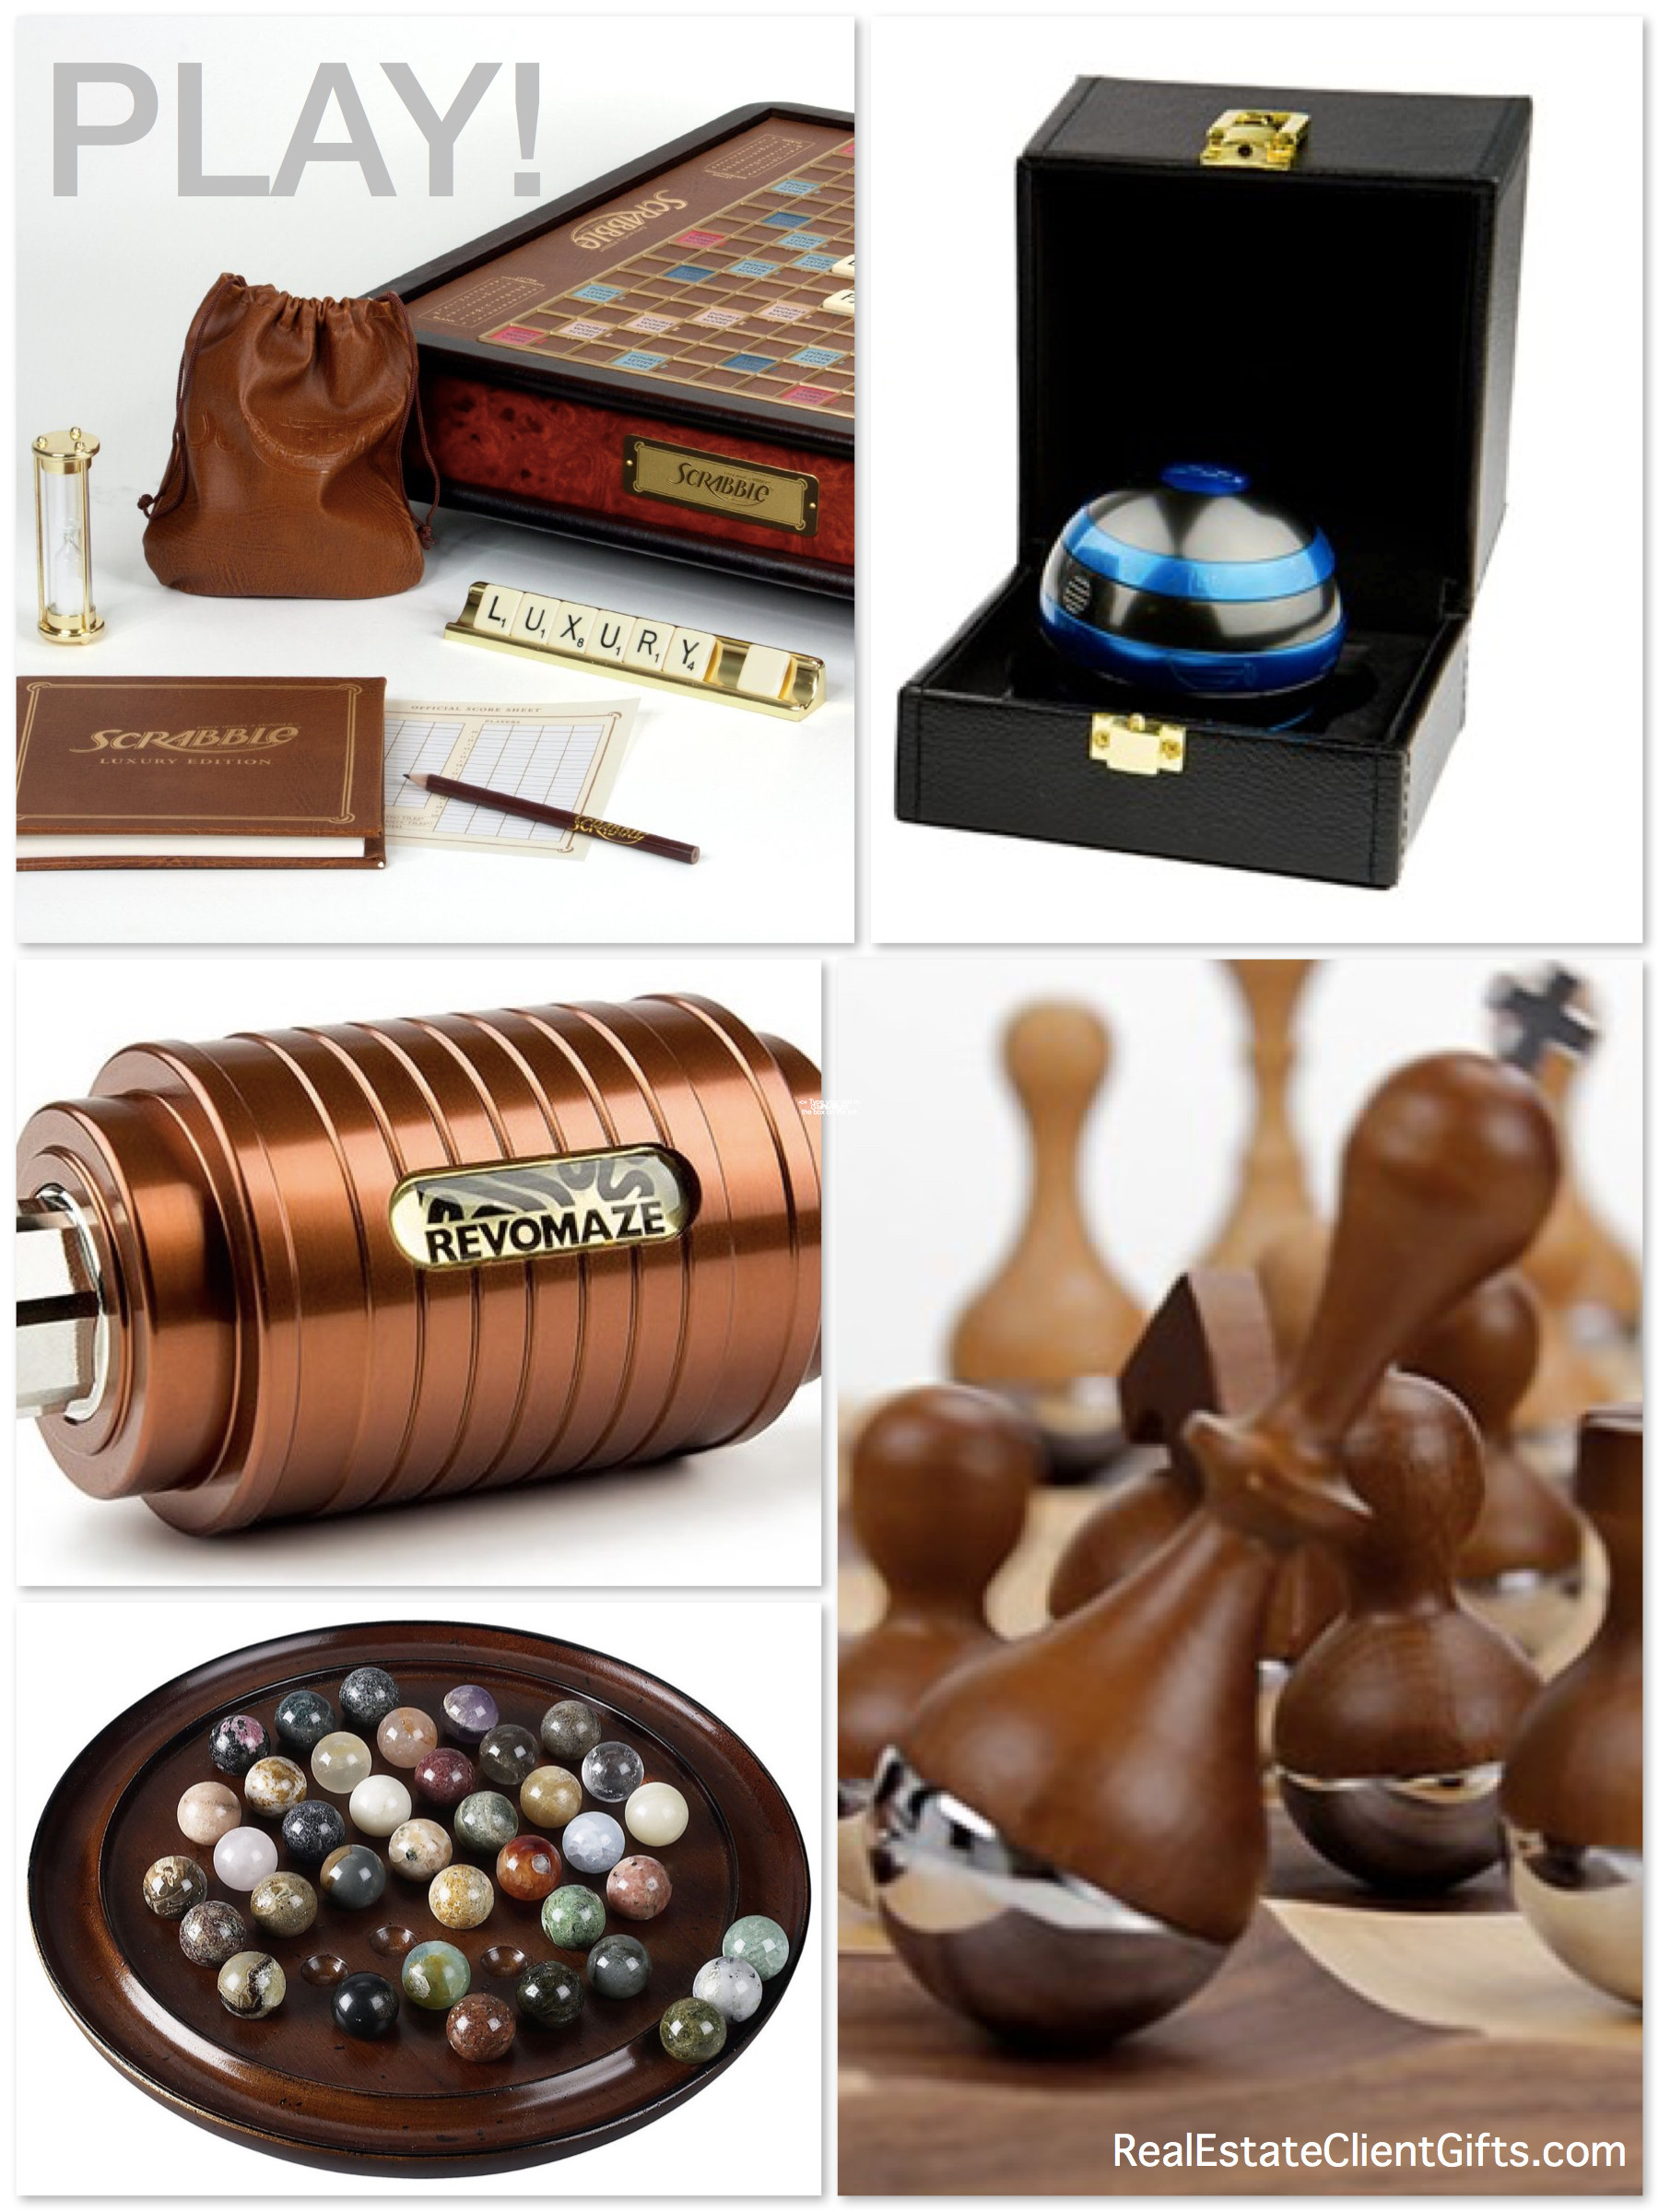 Best ideas about Business Holiday Gift Ideas . Save or Pin Best Holiday Gifts for Business Associates & Clients Now.